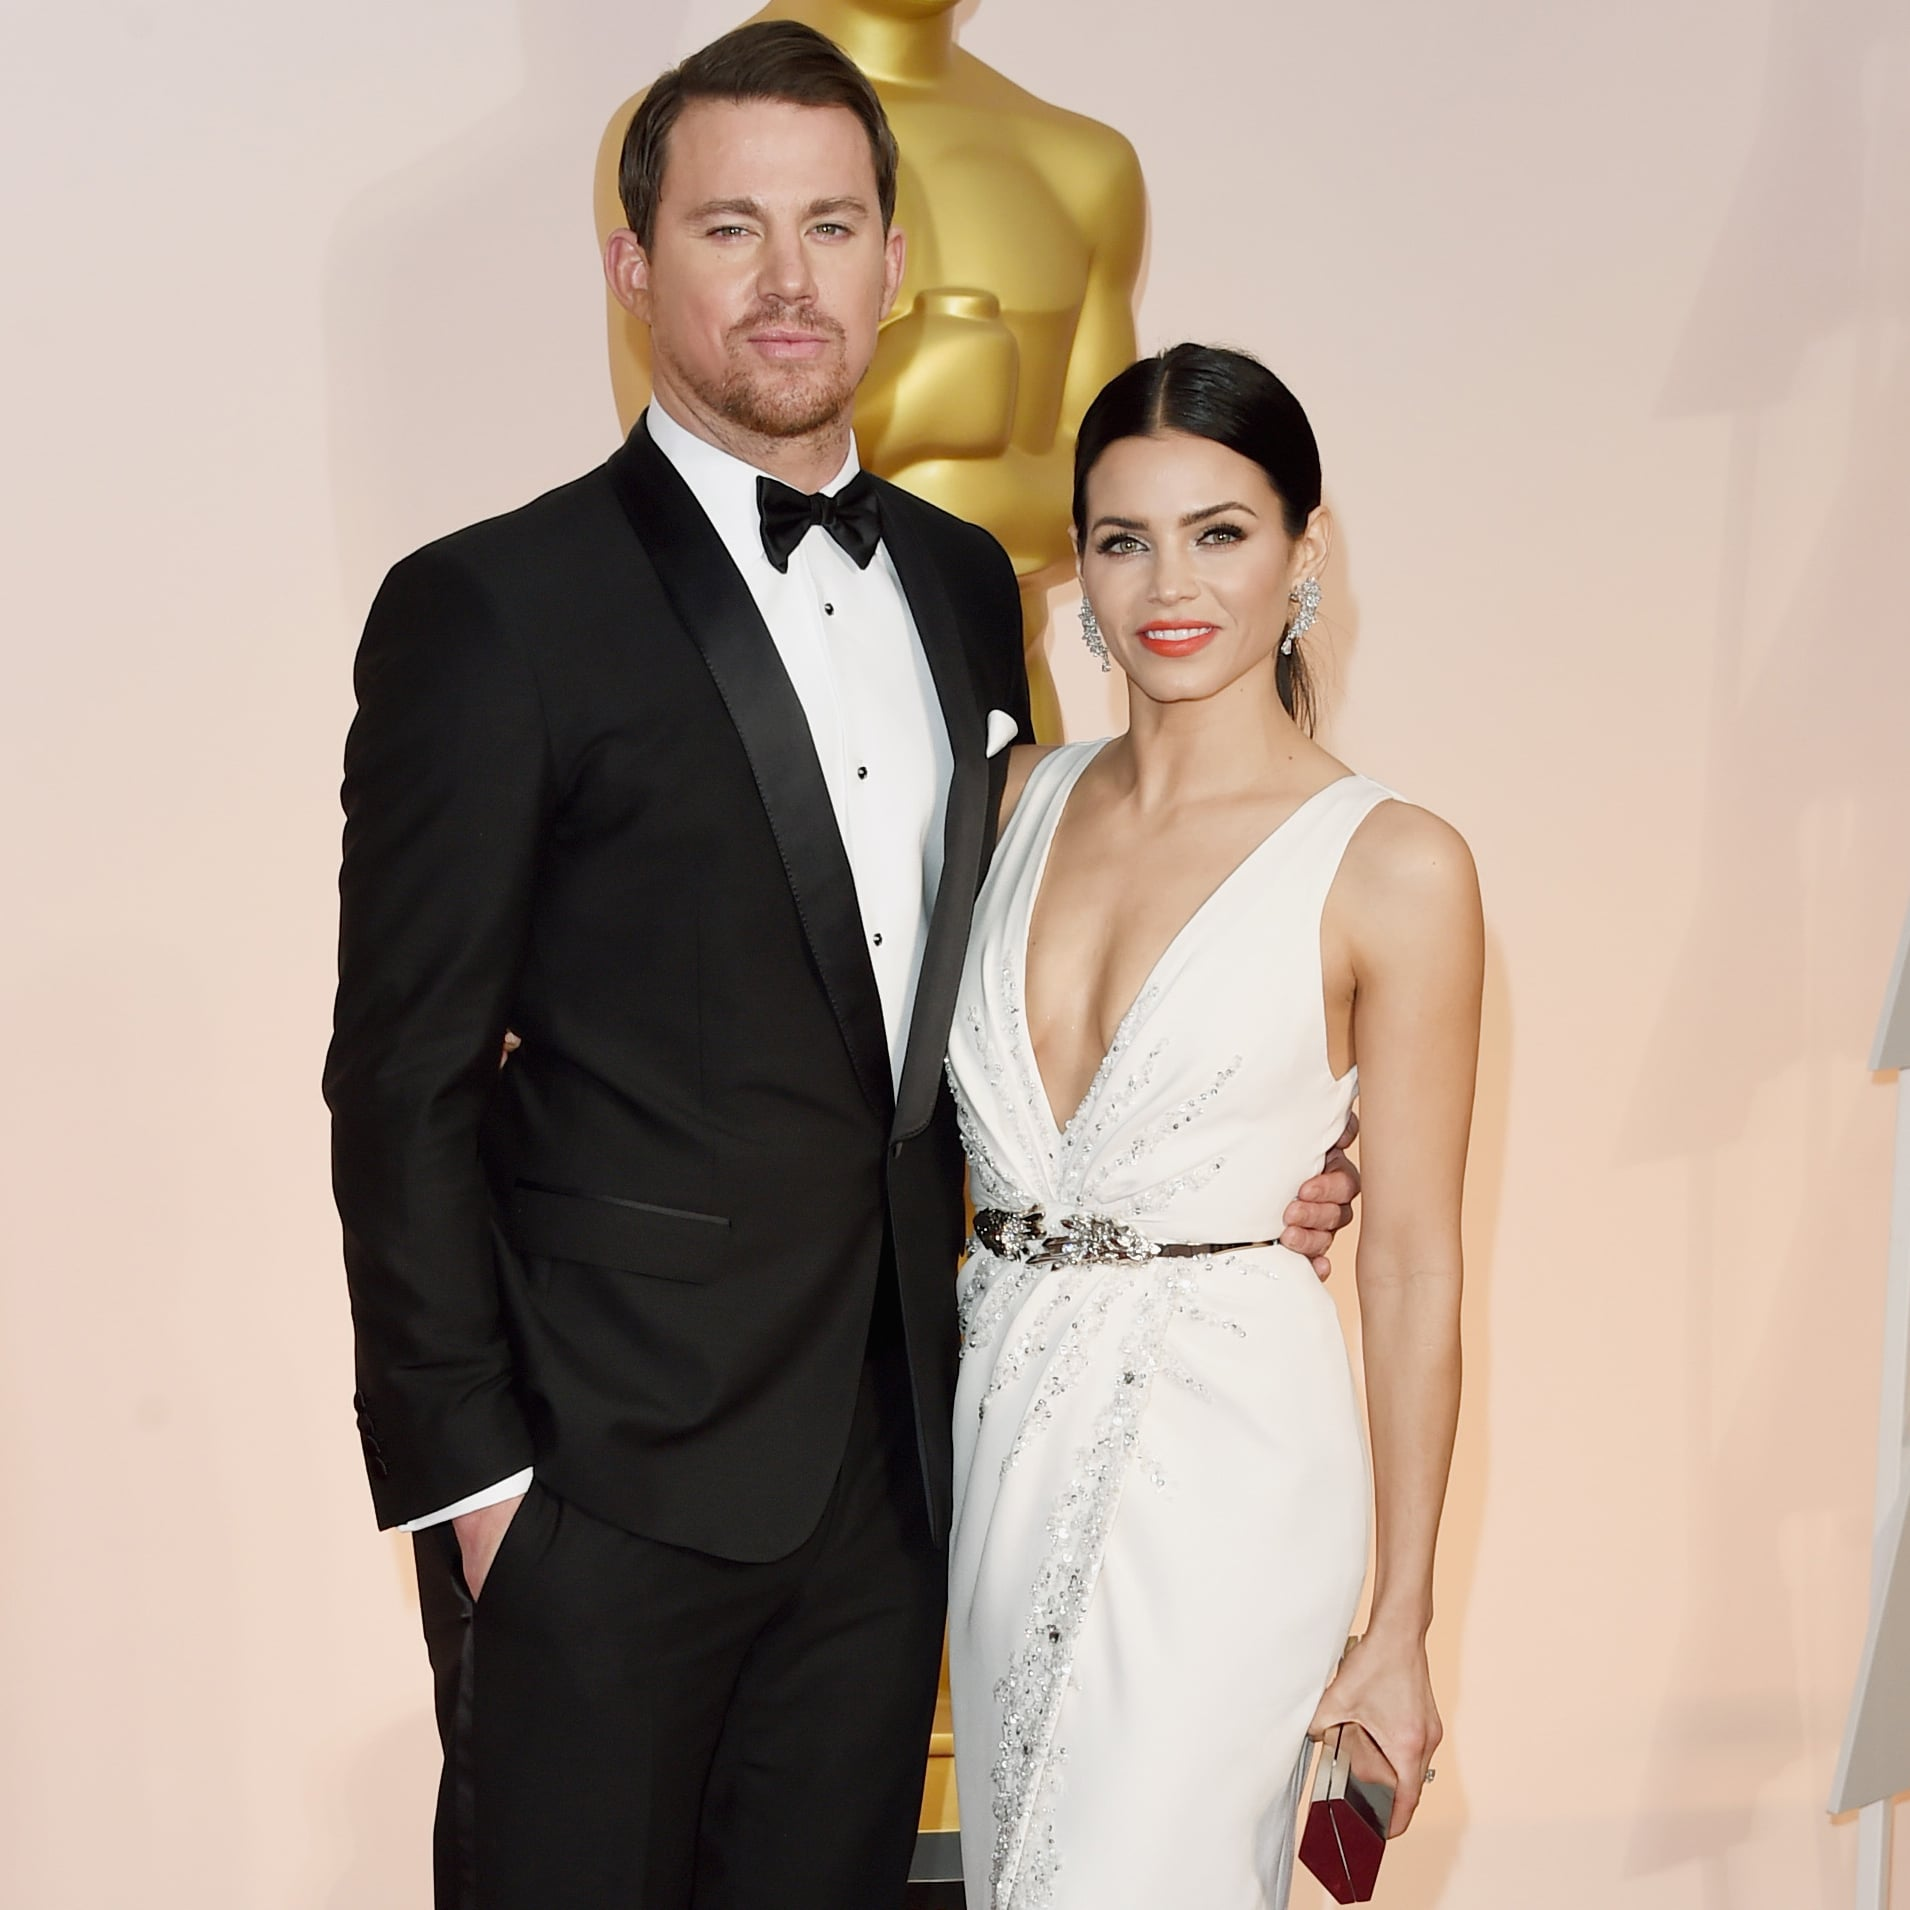 Celebrity couples at the oscars 2015 pictures popsugar celebrity sciox Gallery